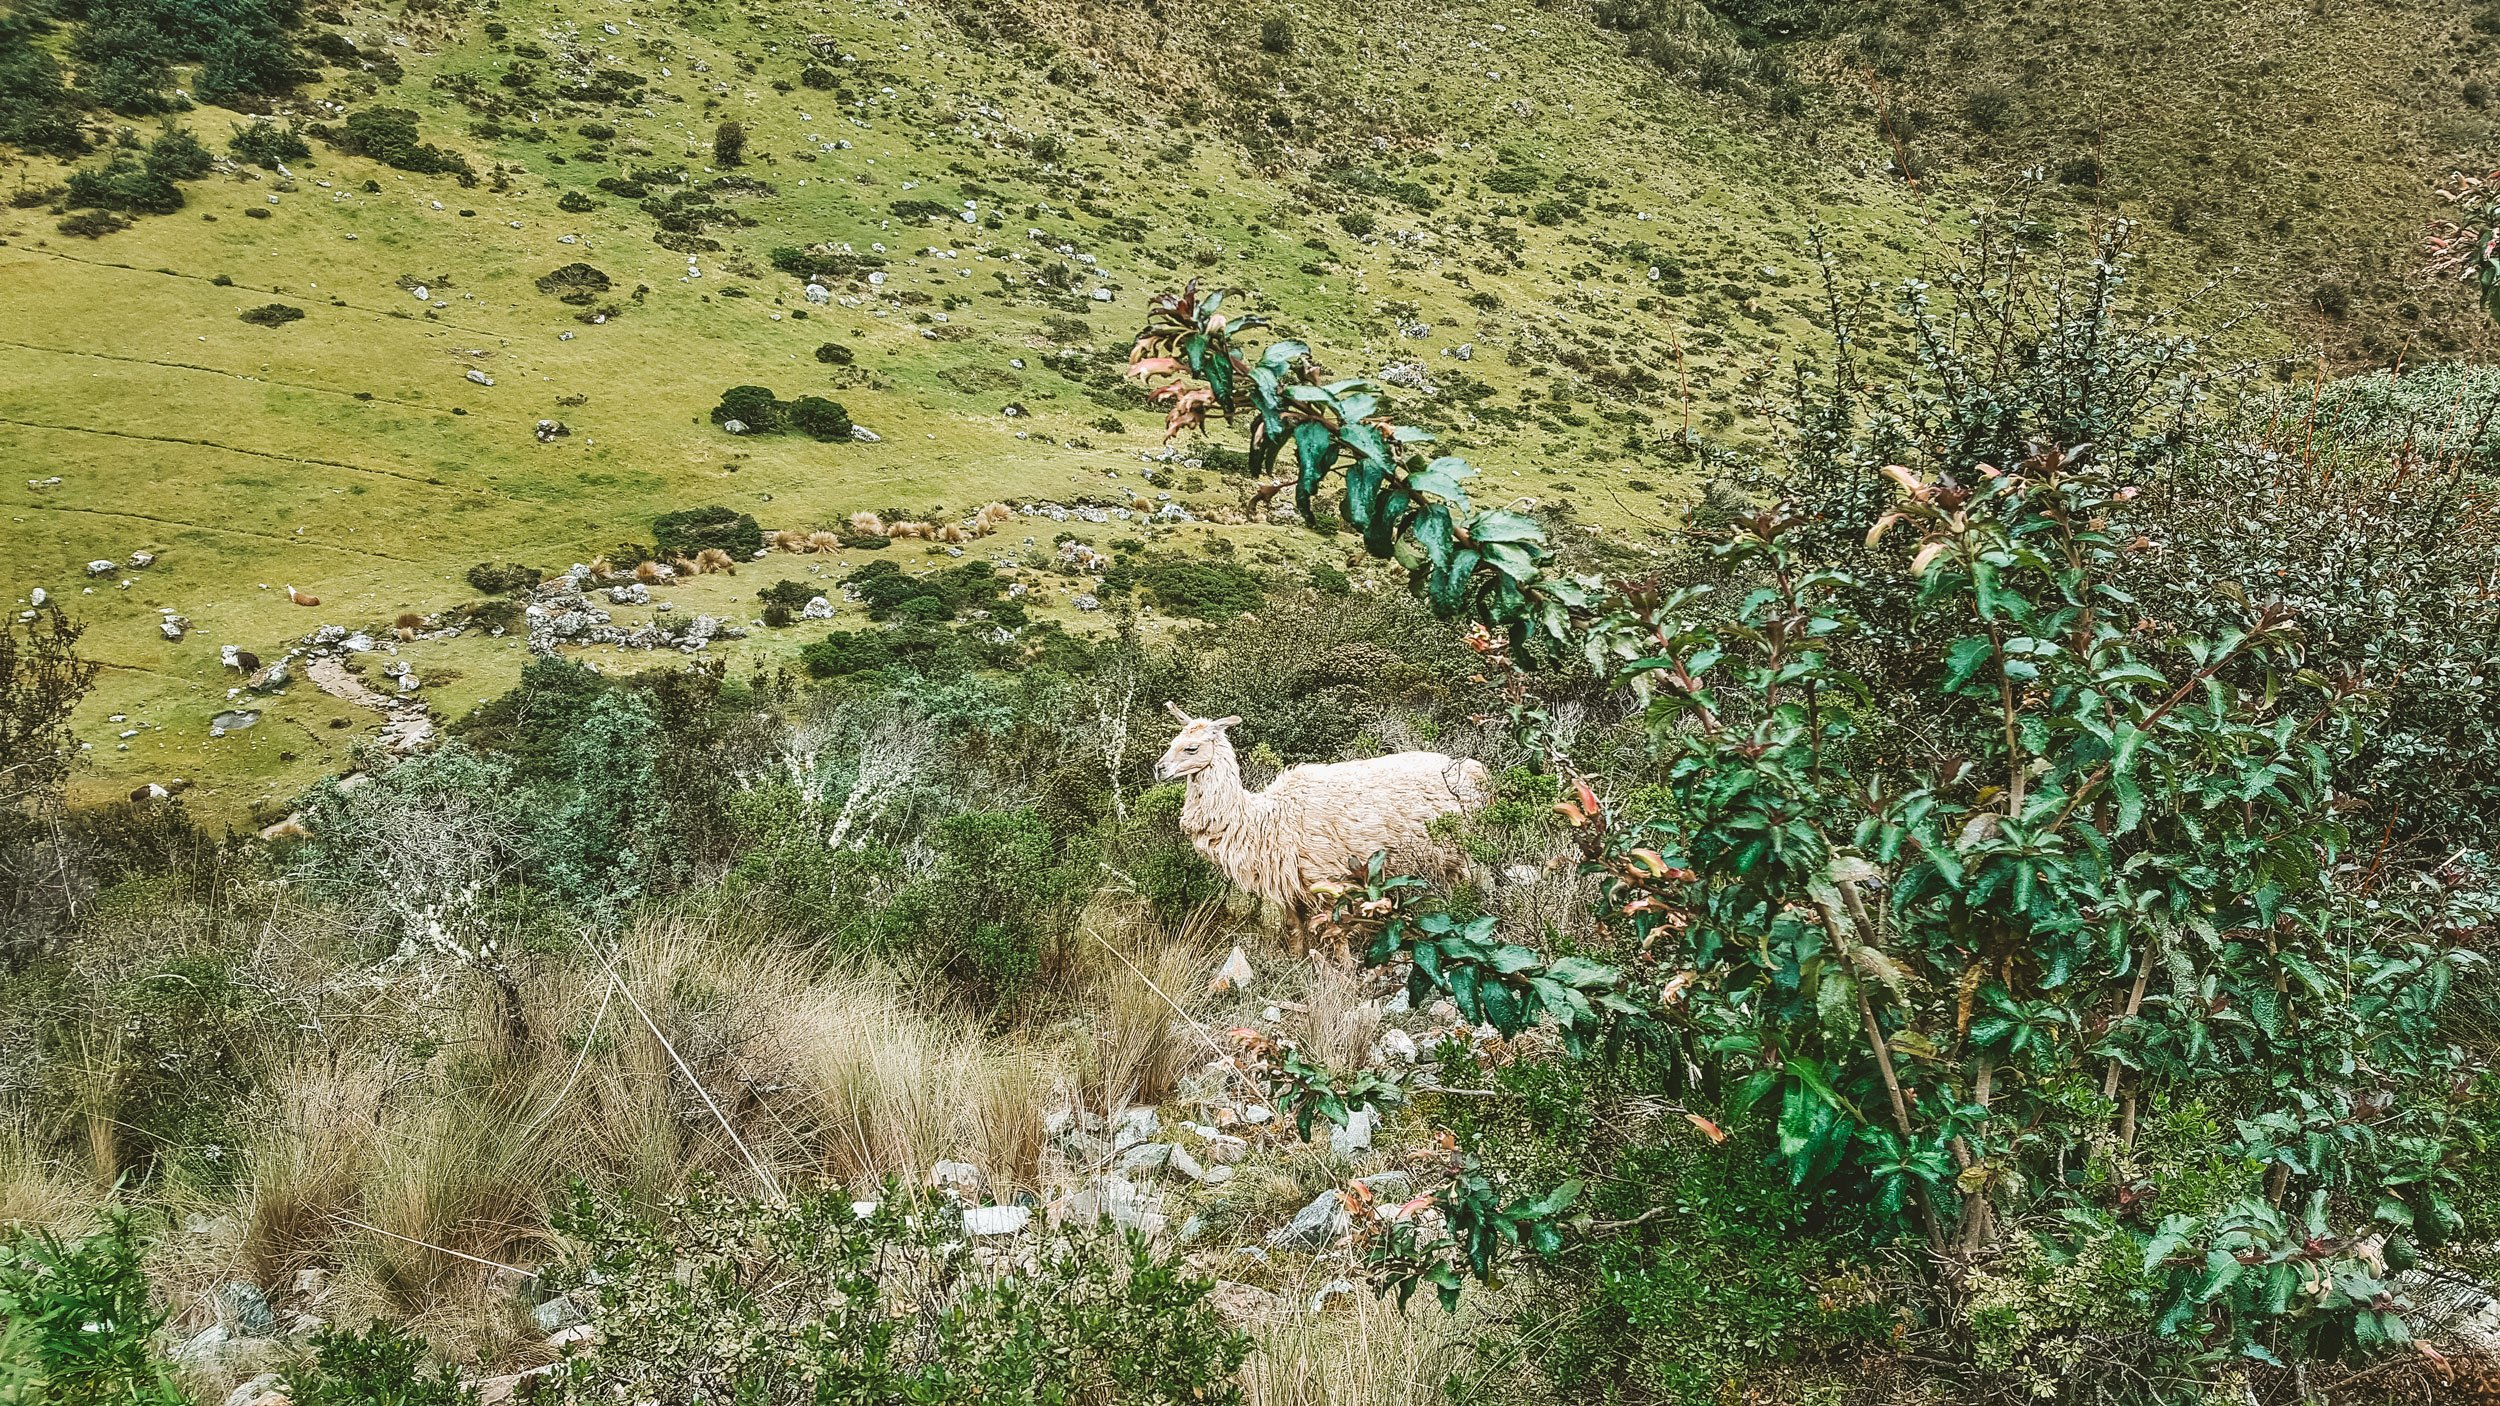 llama on the Inca Trail in Peru | How to Hike the Inca Trail as a Solo Female Traveler